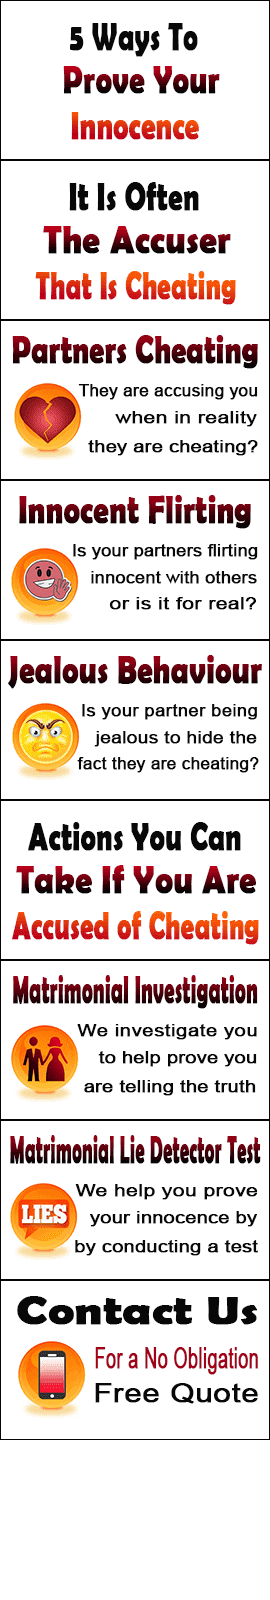 5 Ways To Show Your Innocence In Bexley When Accused Of Cheating